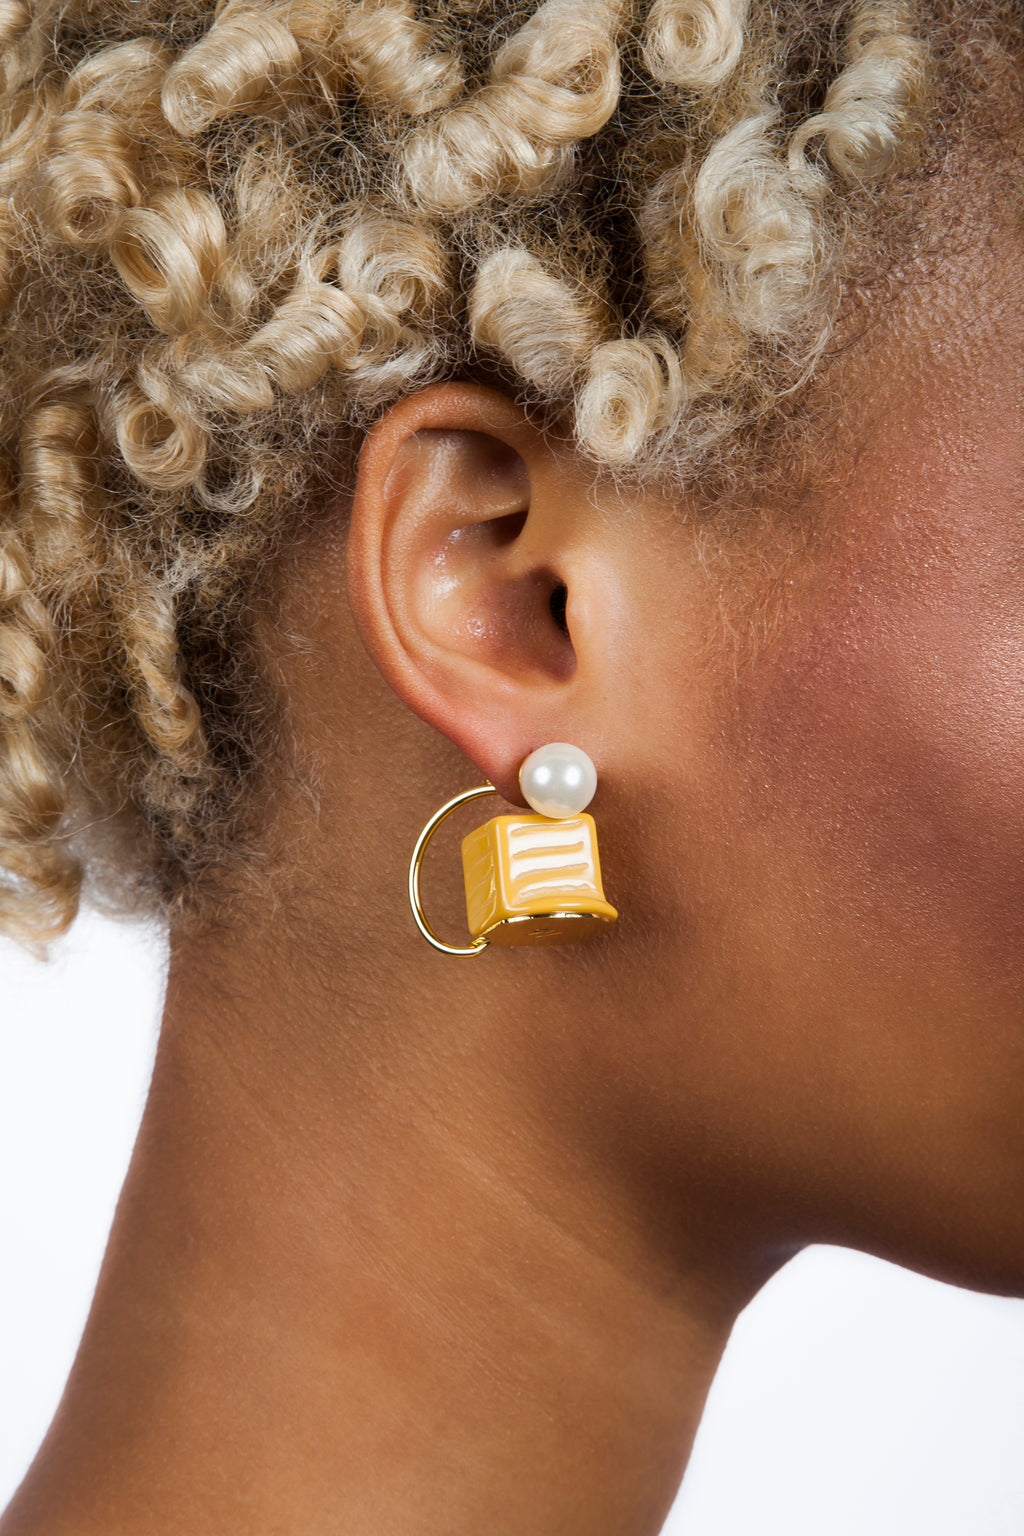 Iris Trends Caramel Candy Earrings by n2 Paris